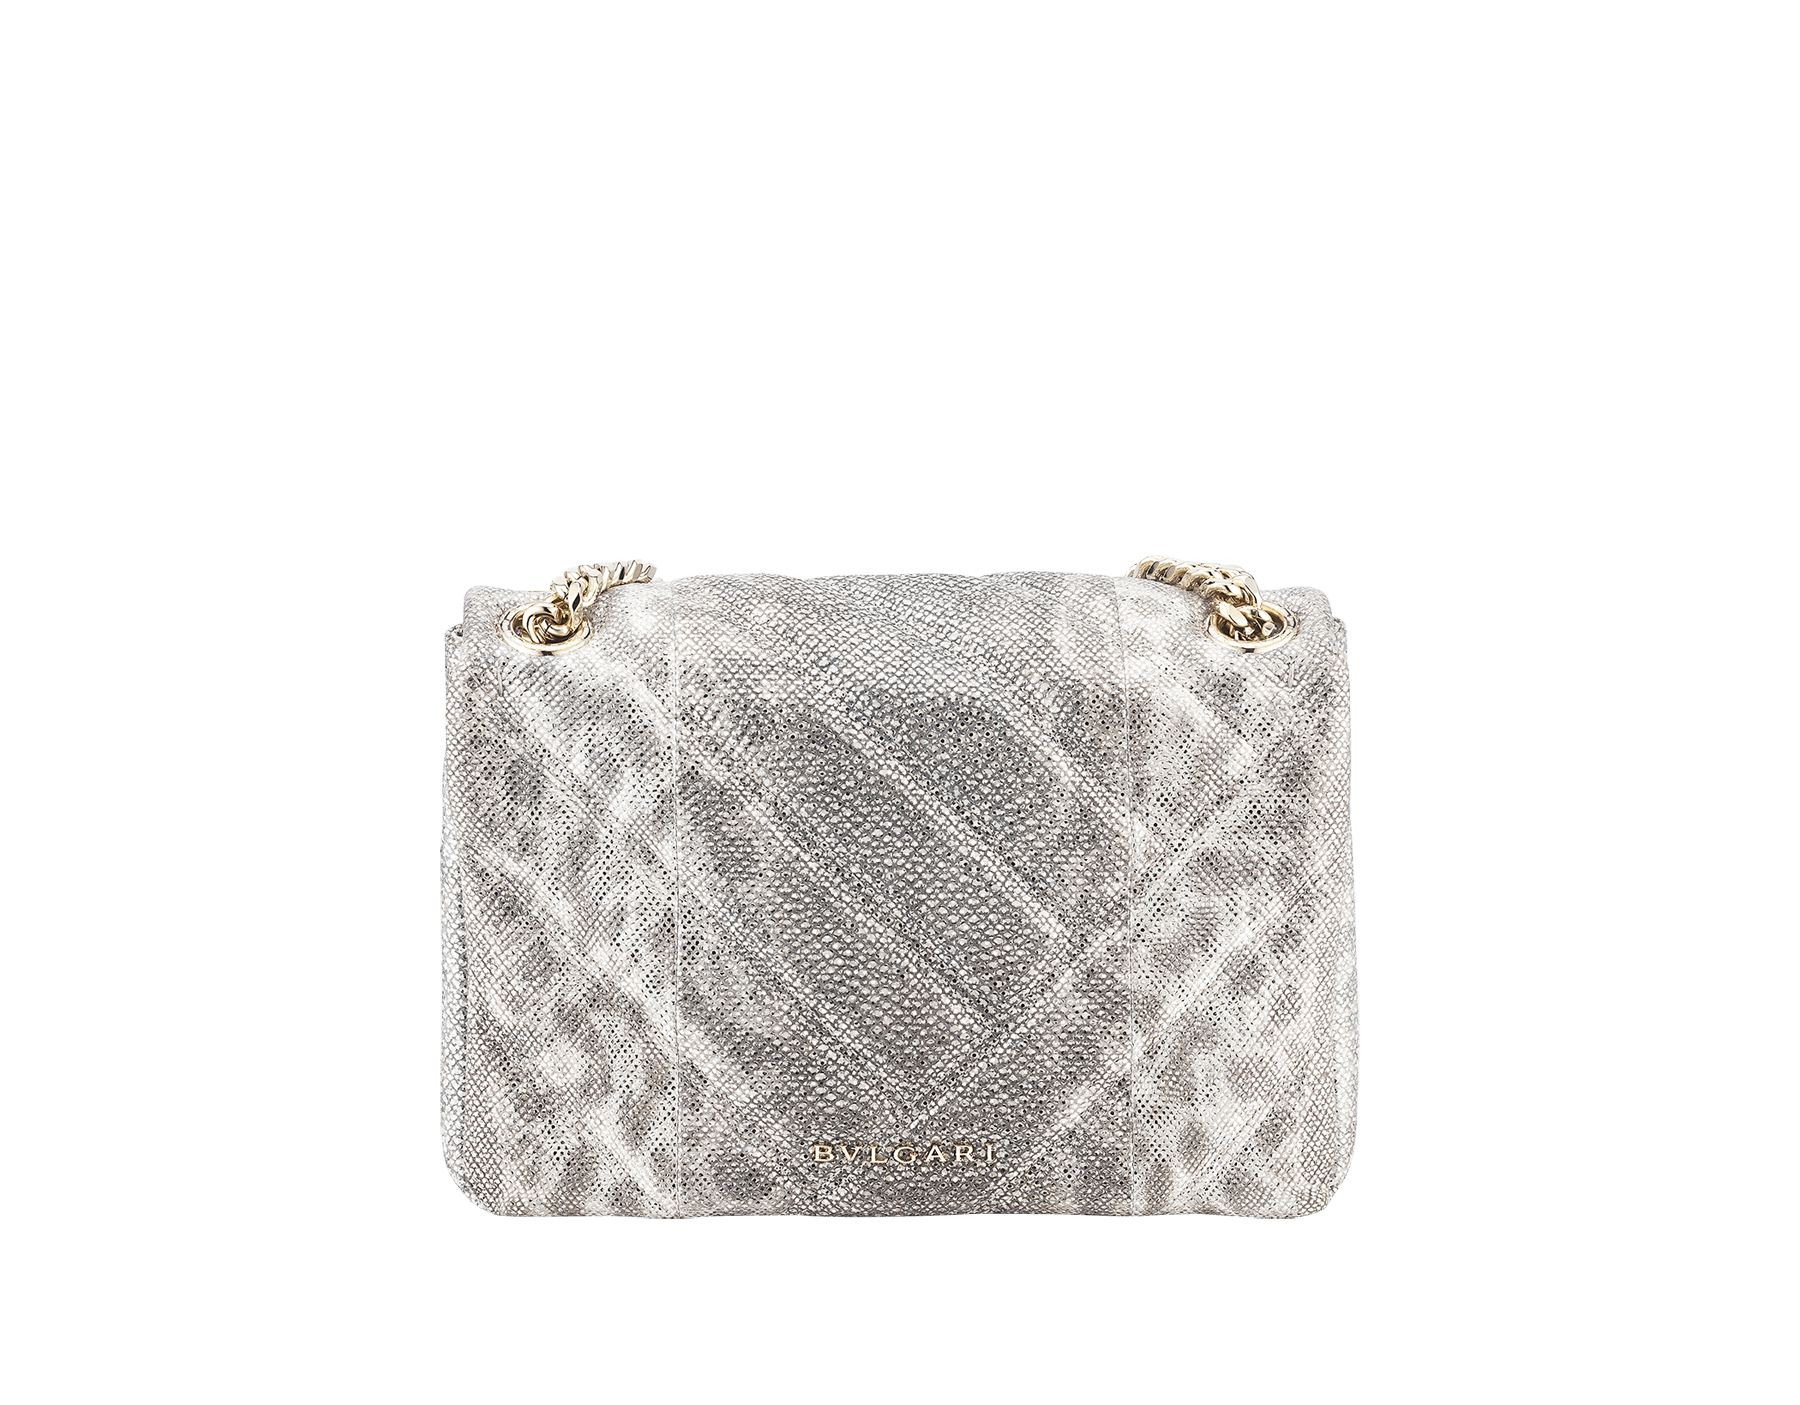 Serpenti Cabochon shoulder bag in soft matelassé charcoal diamond metallic karung skin with graphic motif. Snakehead closure in light gold plated brass decorated with matte black and glitter charcoal diamond enamel, and black onyx eyes. 981-MK image 3